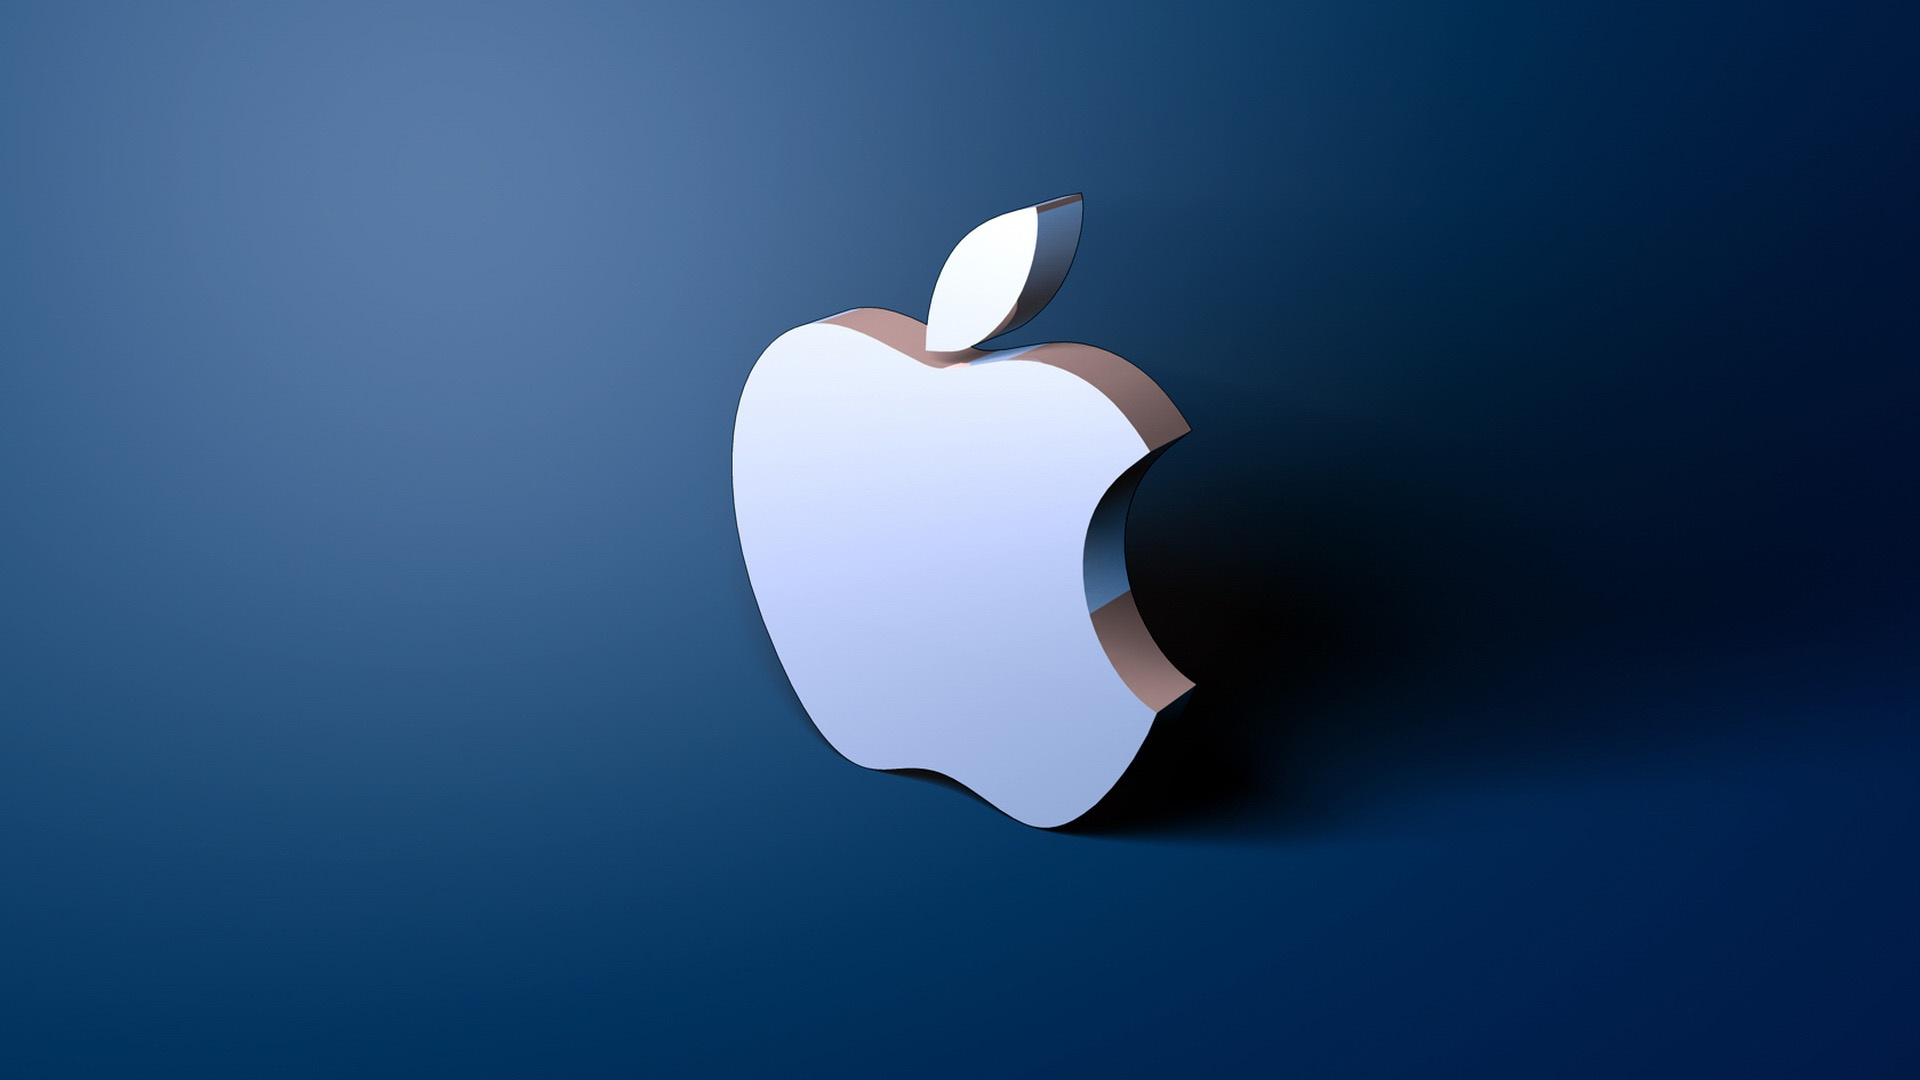 Apple Hd Fonds D Ecran Hd